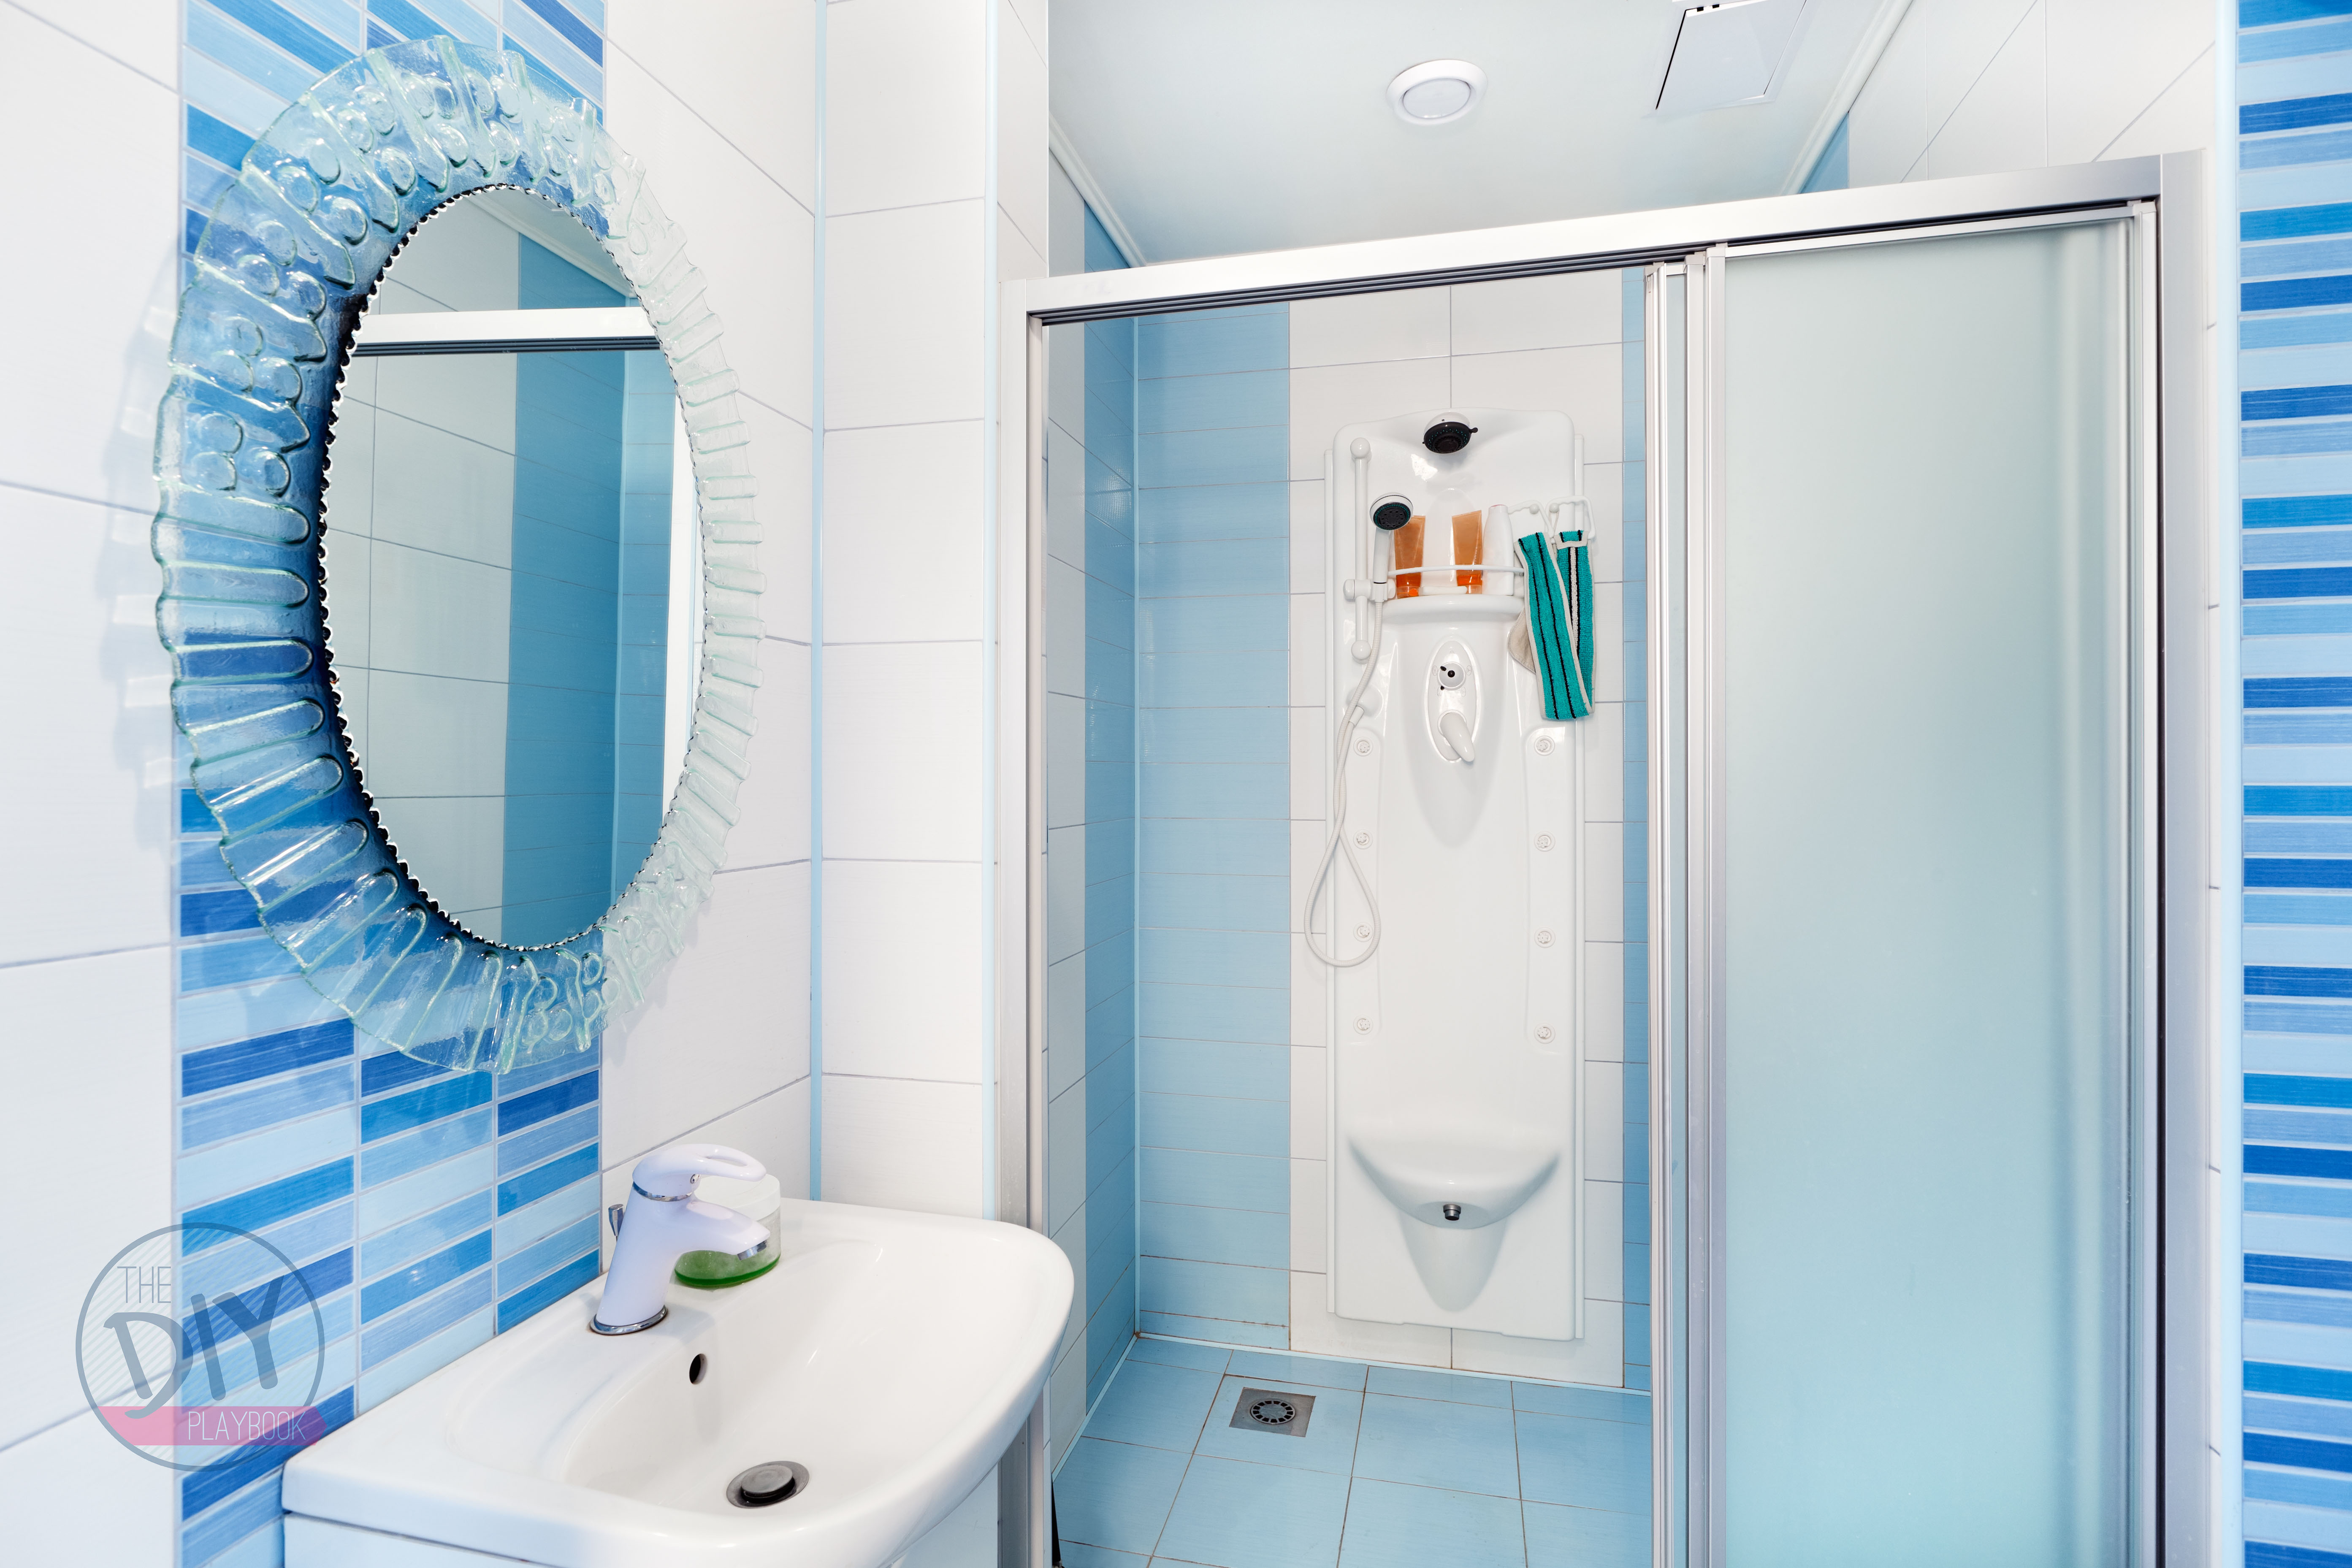 6 Eye Catching Bathroom Trends That Will Pump up Your Resale Value